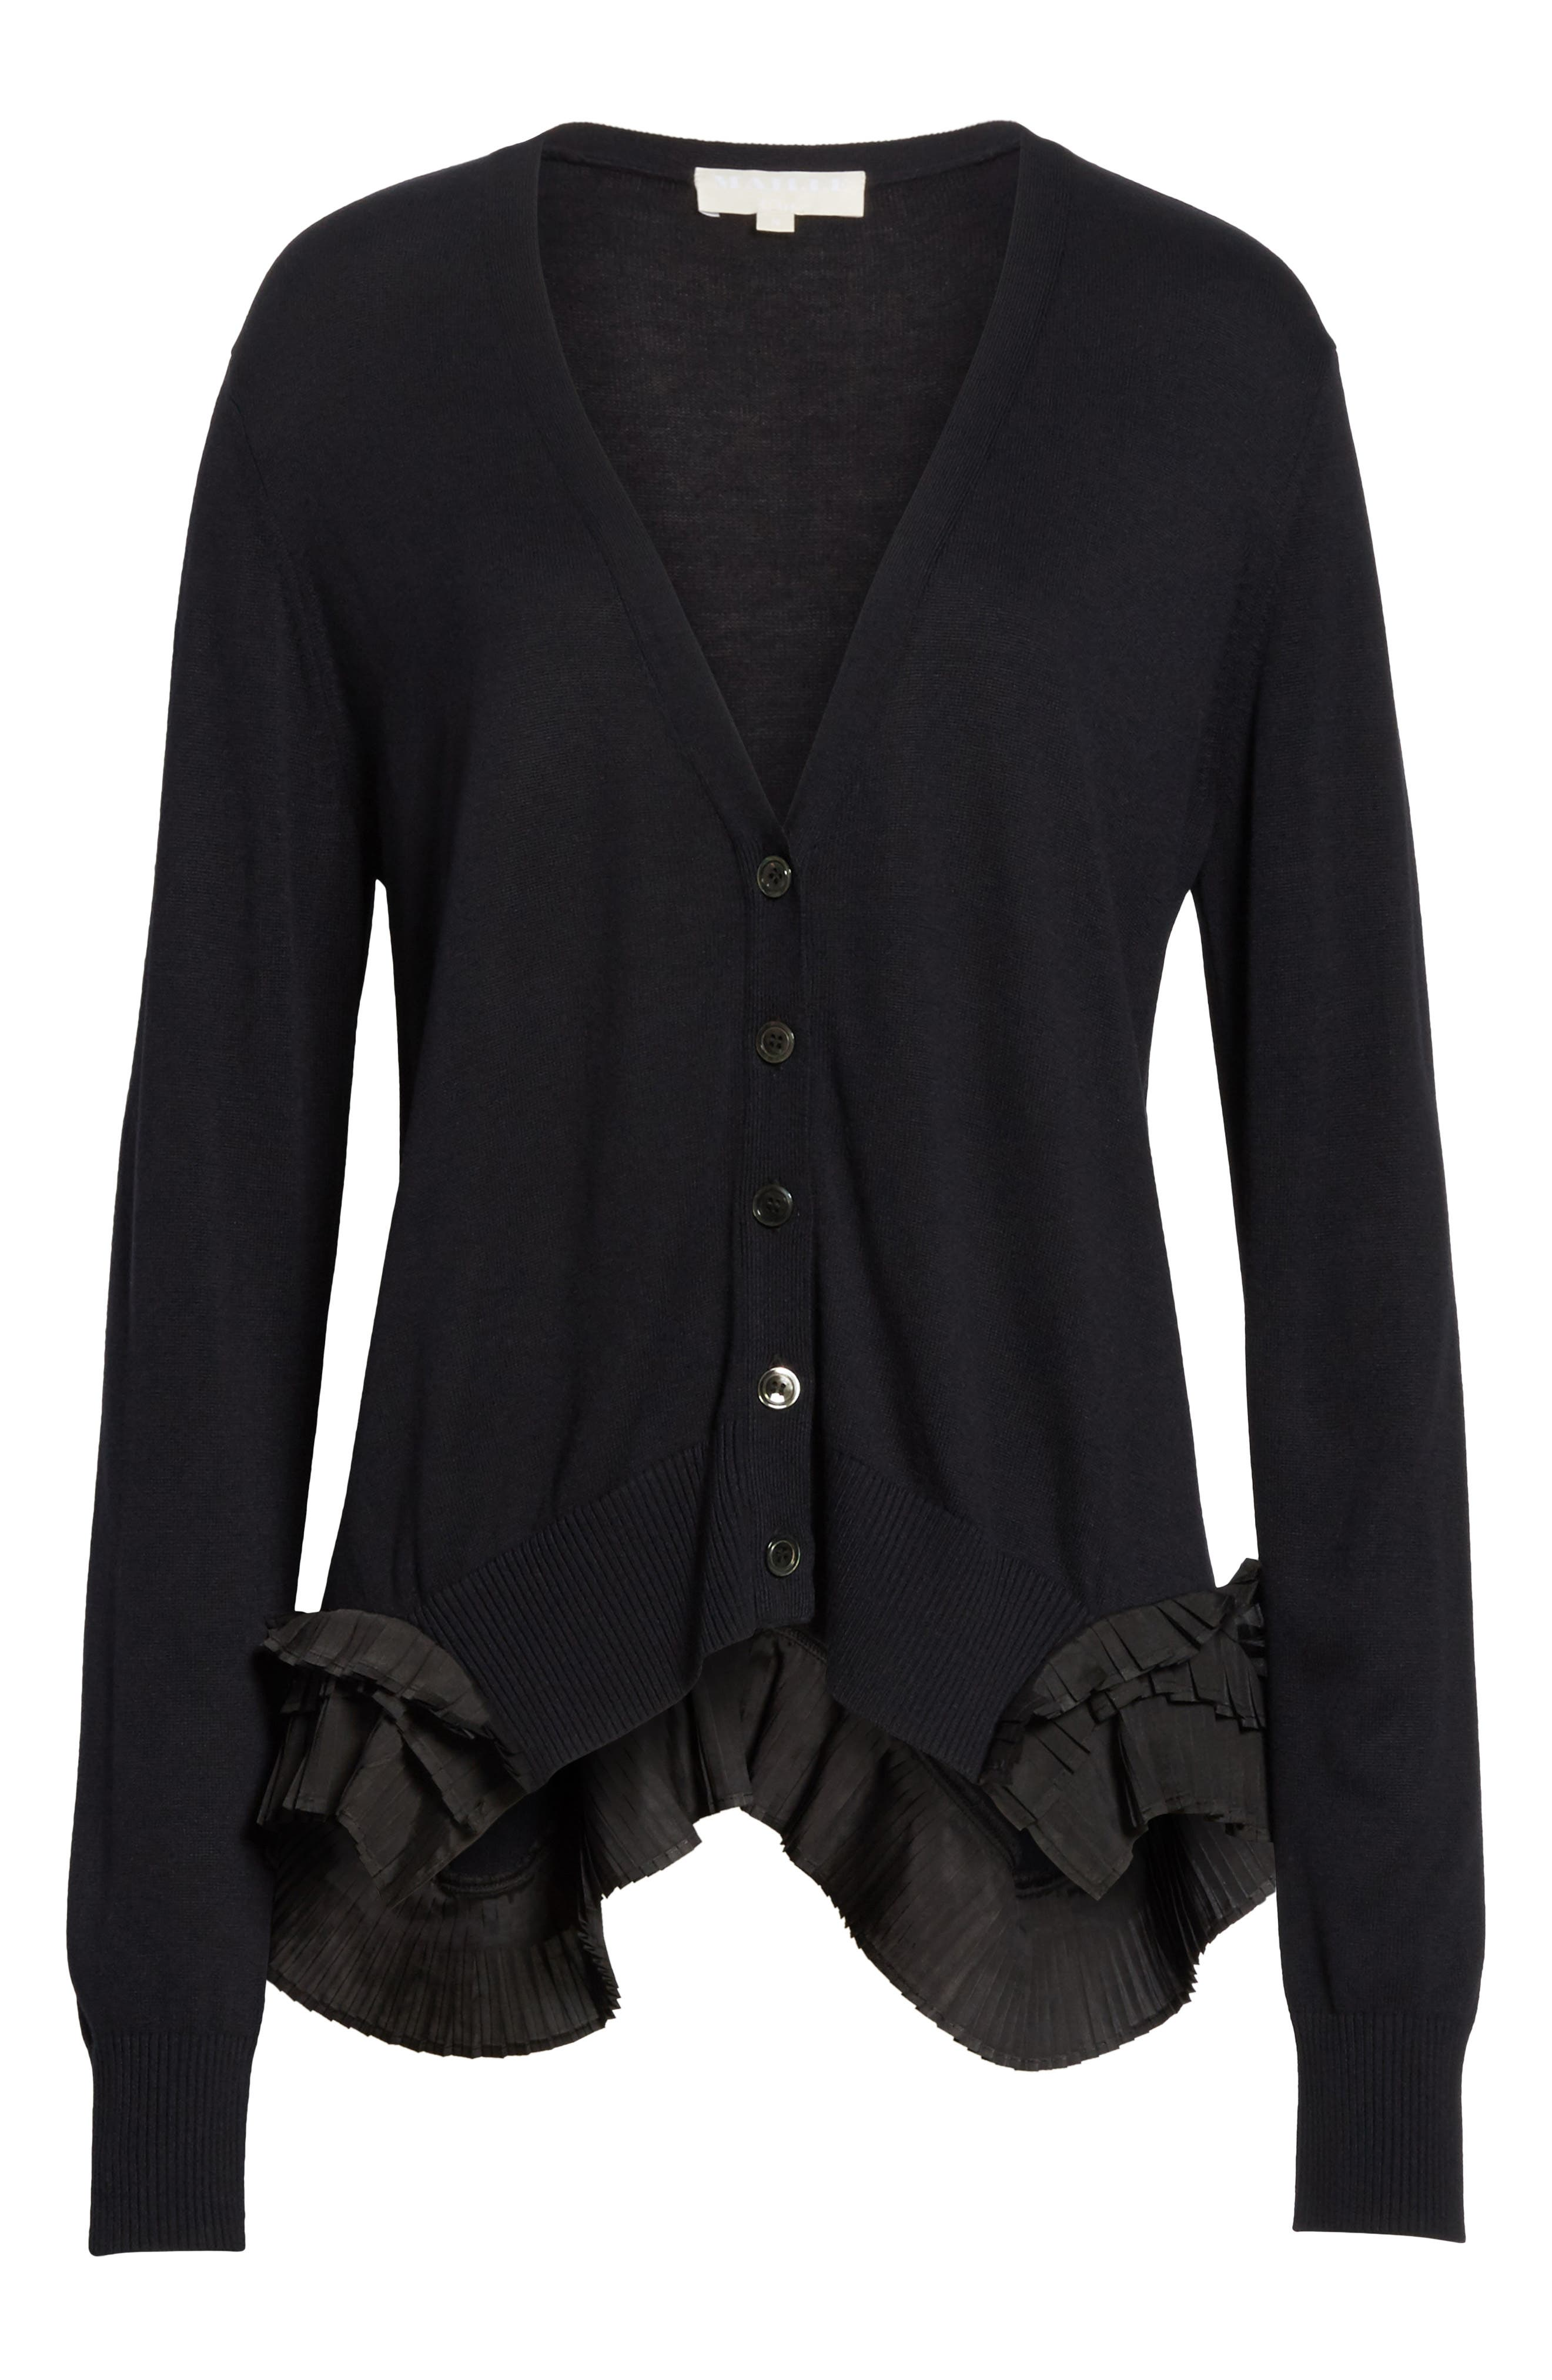 Pleat Ruffle Trim Cardigan,                             Alternate thumbnail 6, color,                             Black